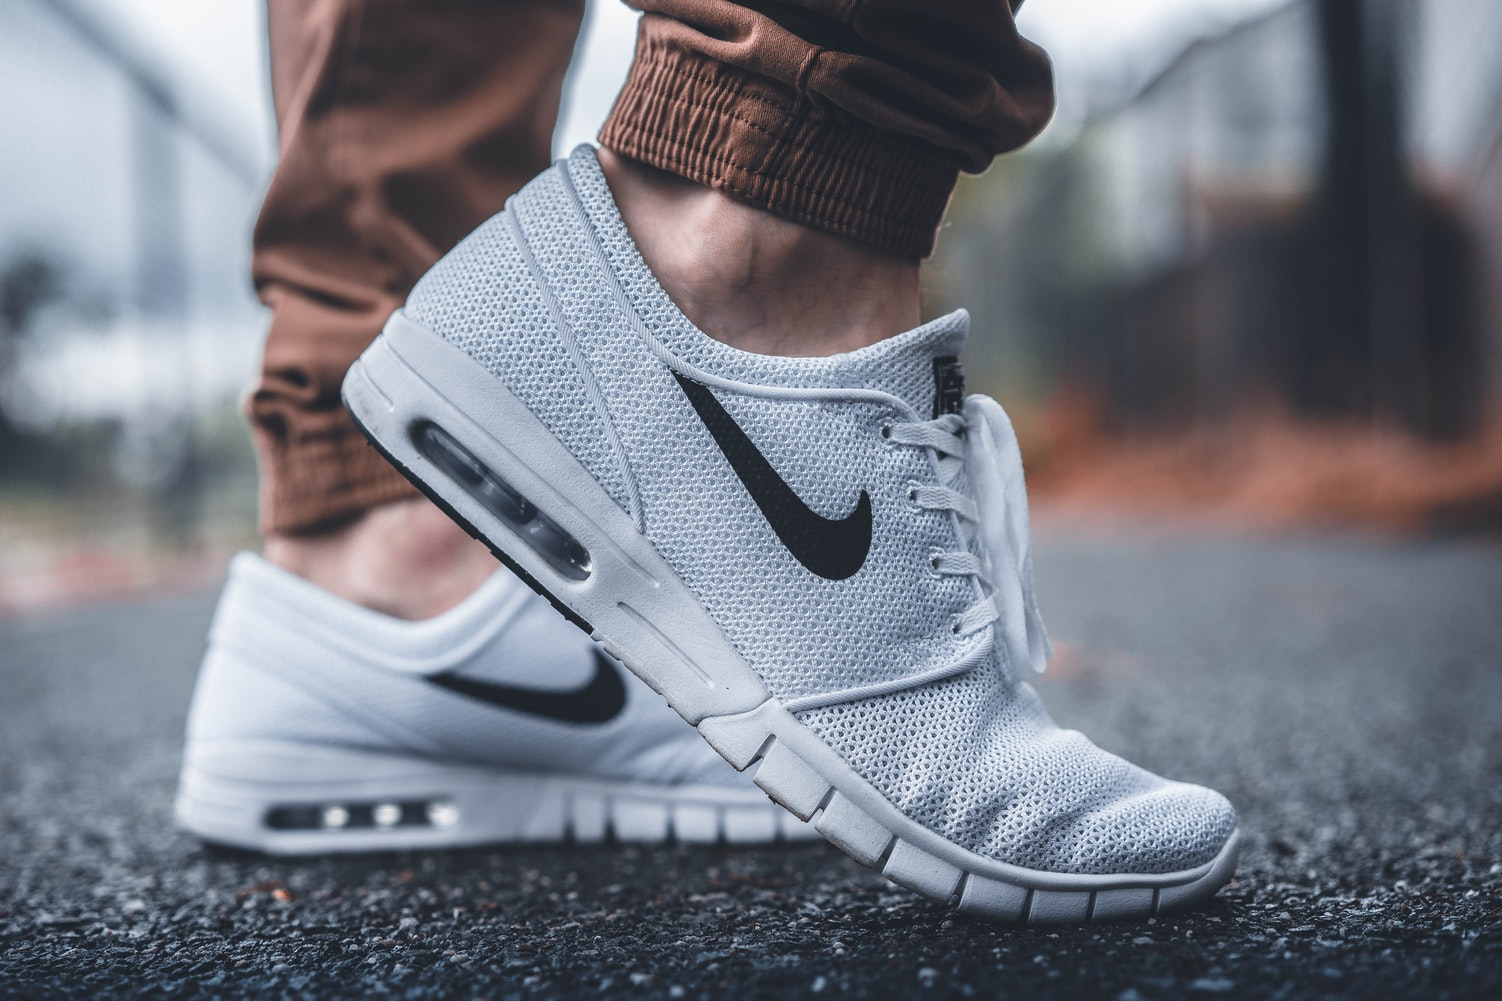 White Nike Best Shoes Under $100